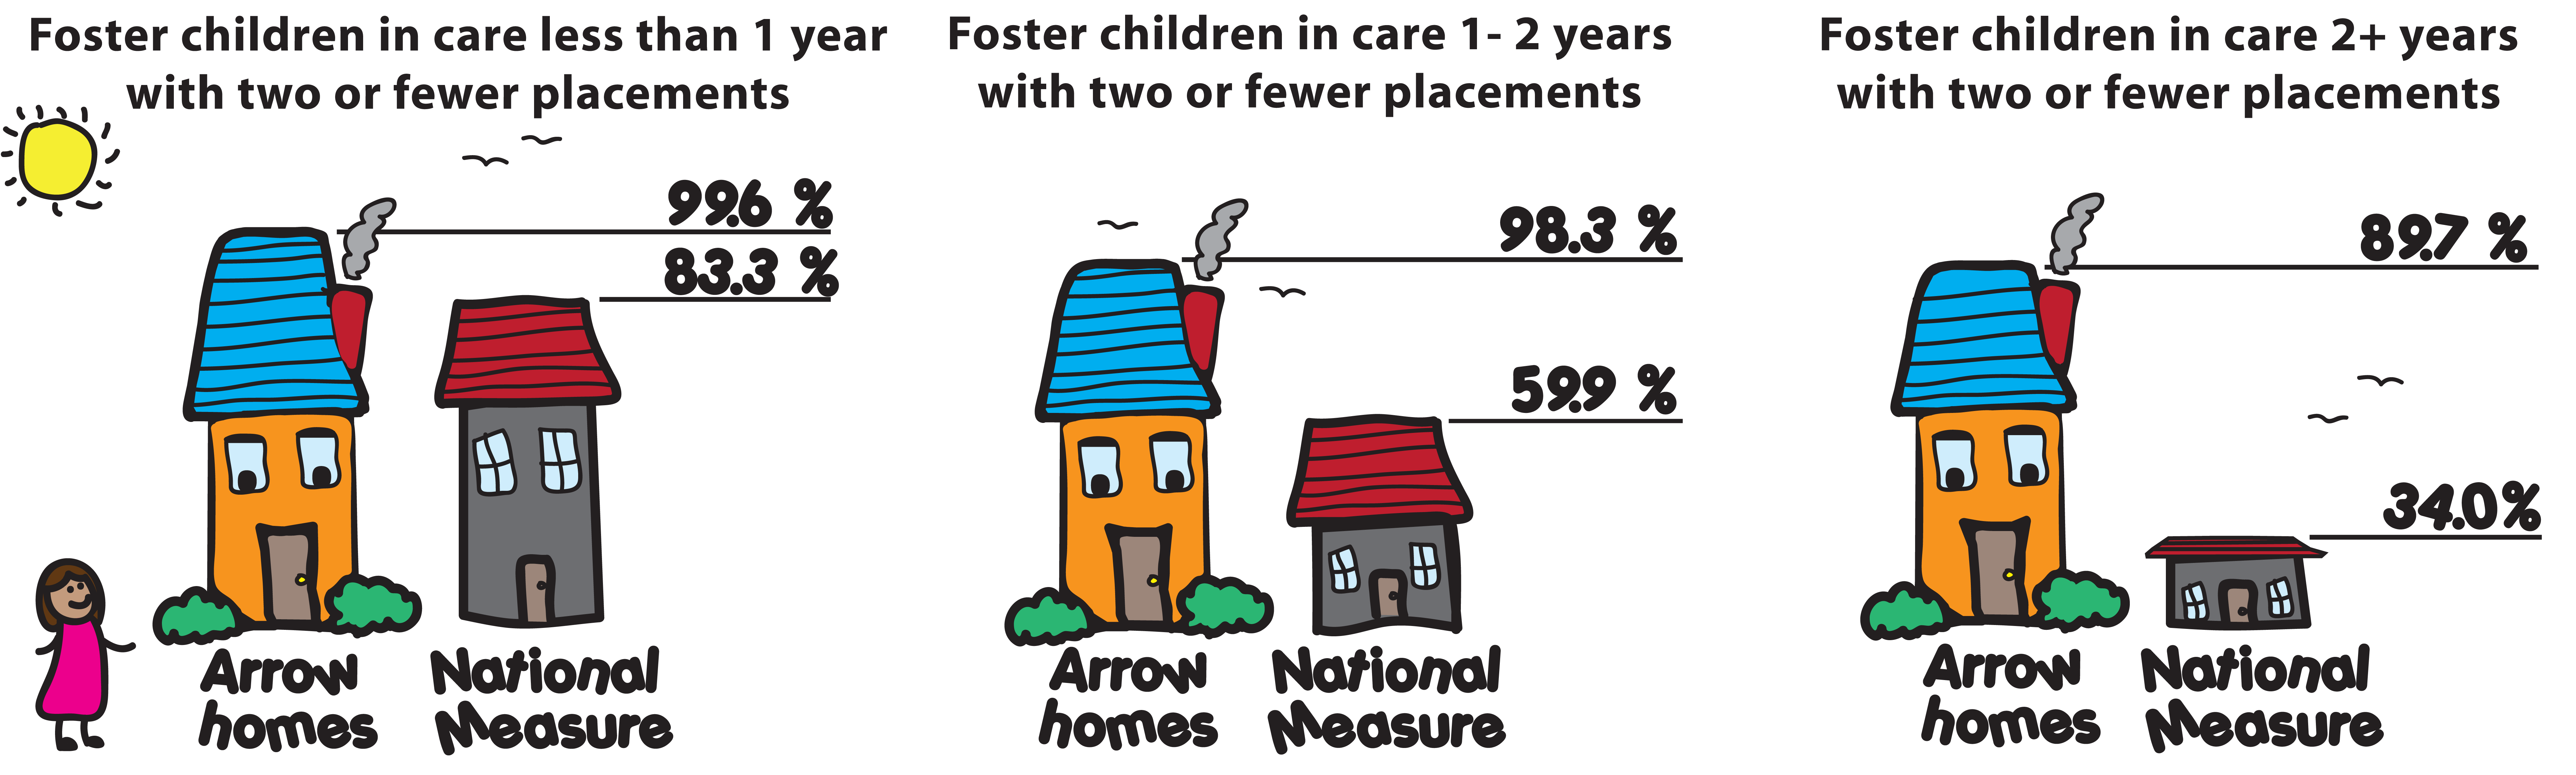 Future clipart brighter future. Collection of free fostering